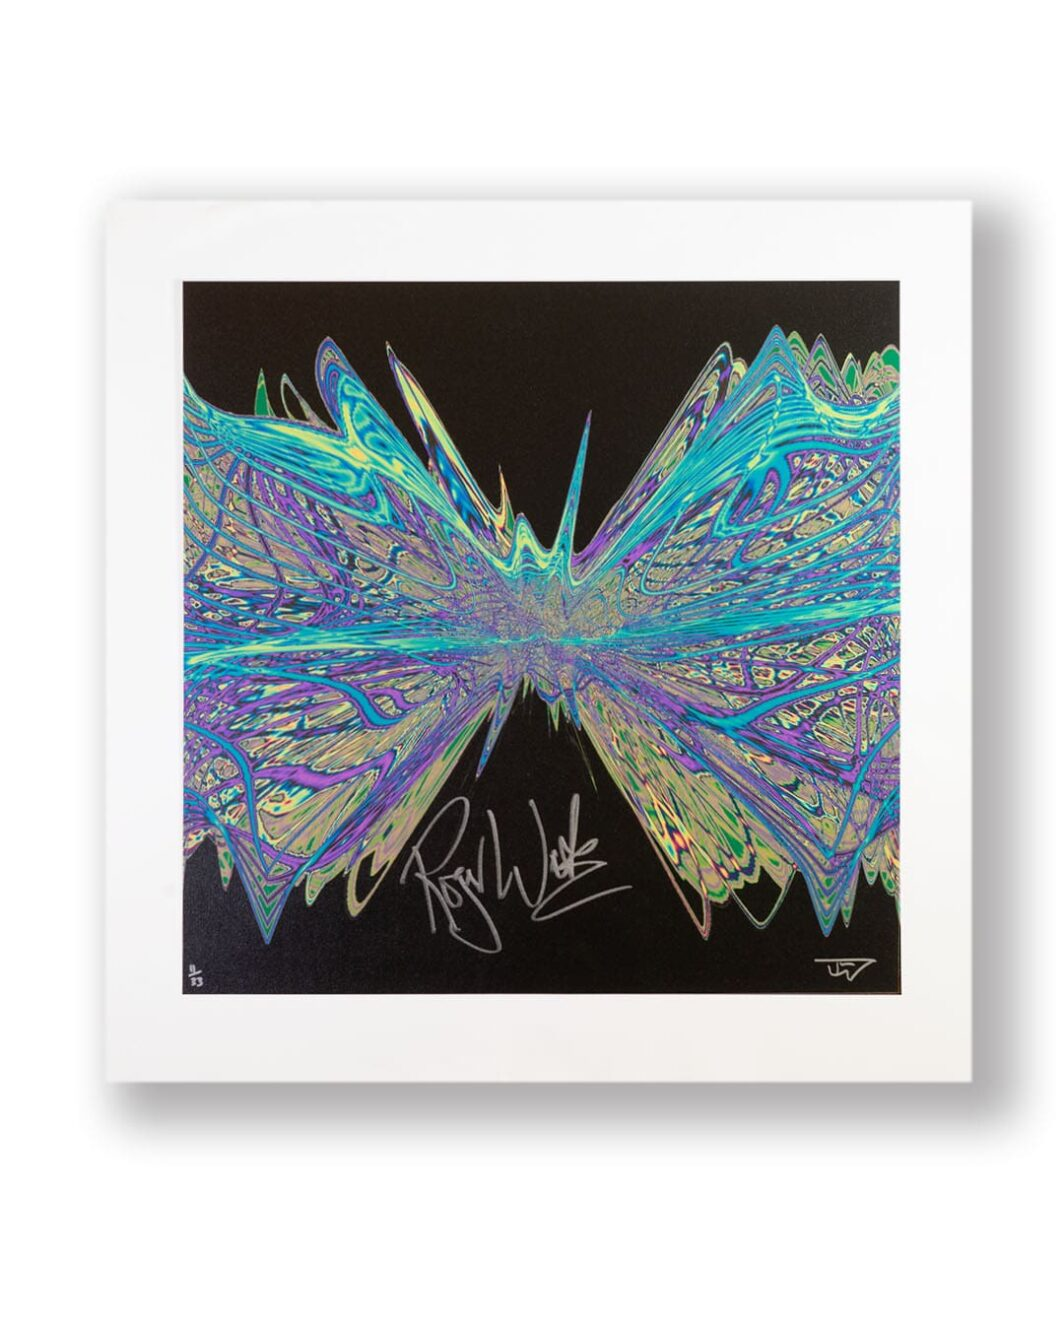 Pink floyd, Roger Waters signed print